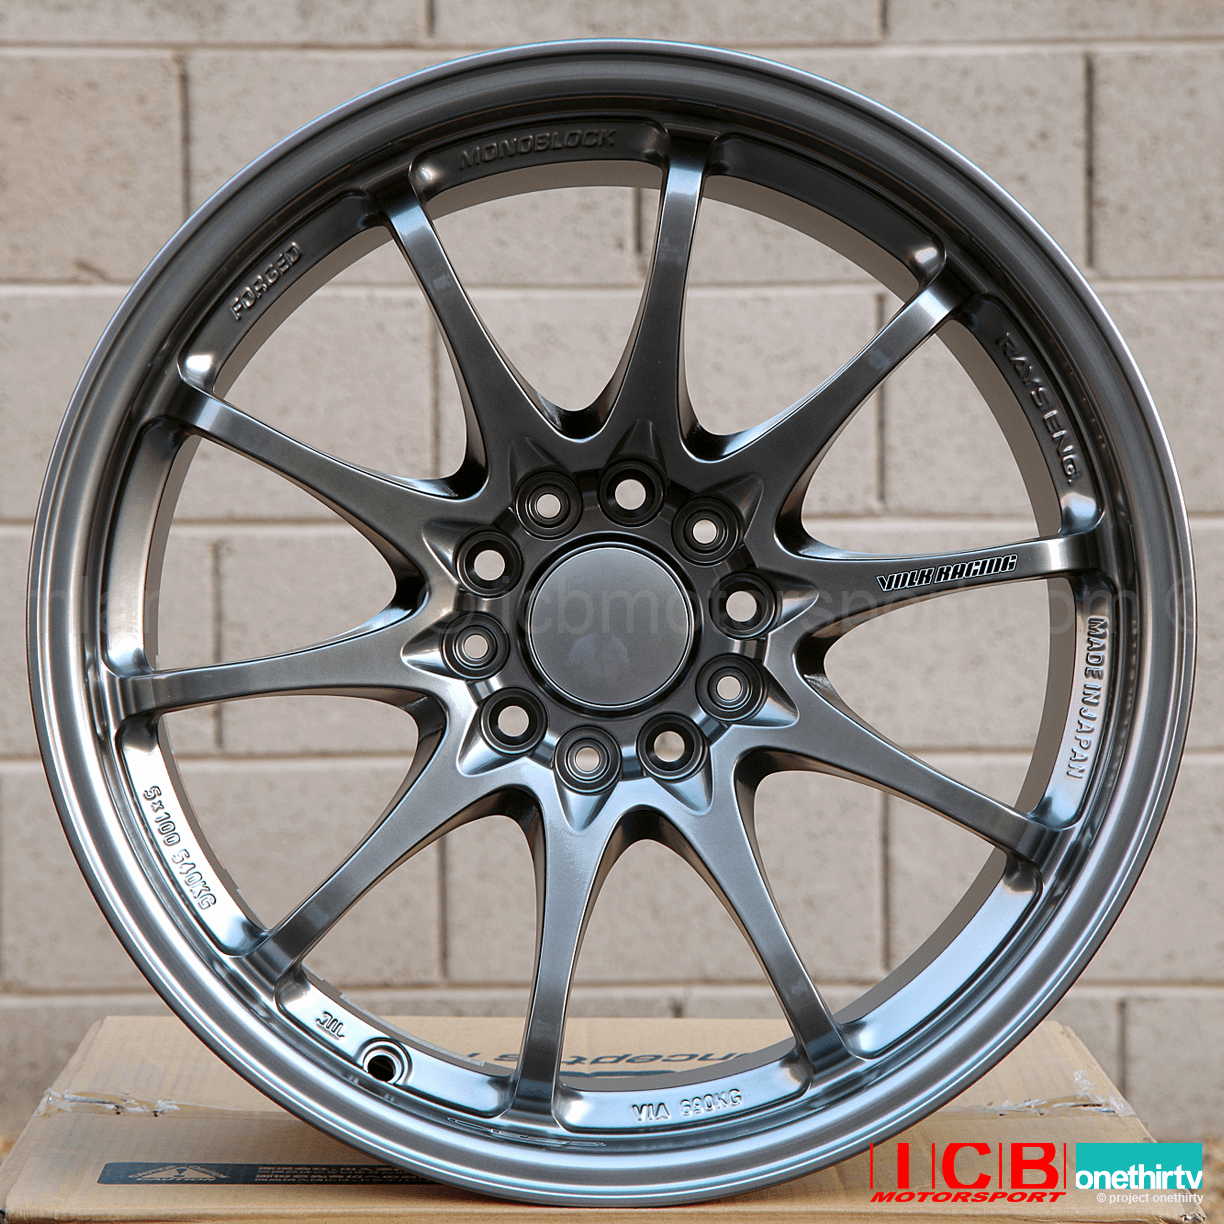 Rays Volk Racing CE28N Formula Silver Wheels Set 5X114.3 17X10 +50 Offset Concave Face BBK